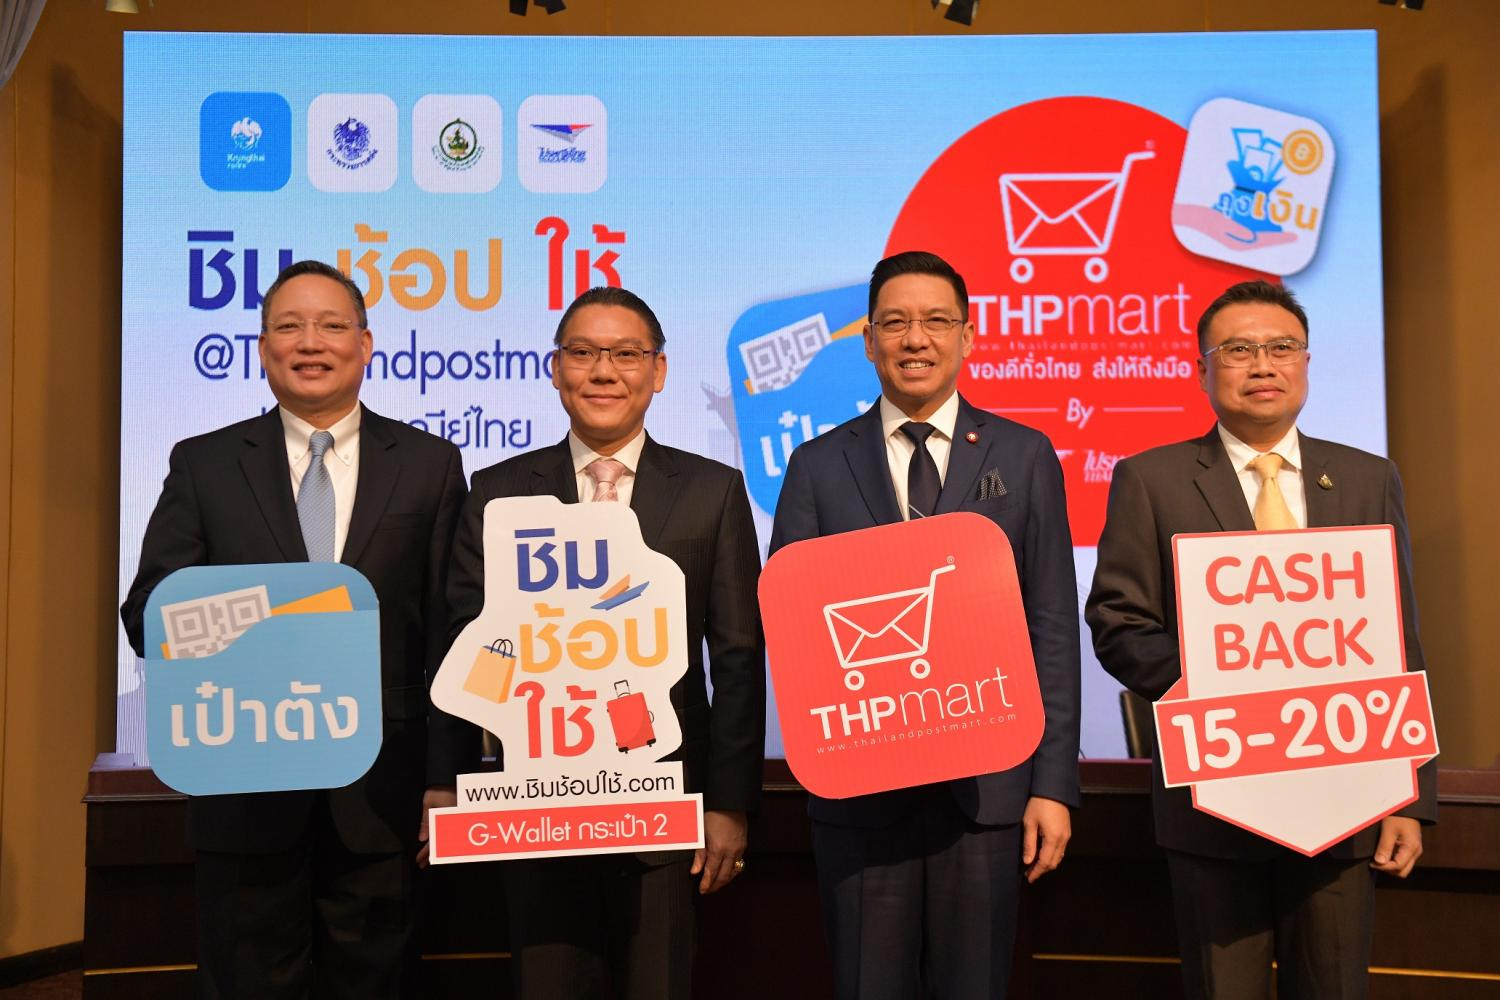 Charnkrit Dejvitak (second left), the vice-minister attached to the prime minister, and Digital Economy and Society Minister Buddhipongse Punnakanta (second right) promote Taste-Shop-Spend via thailandpostmart.com.